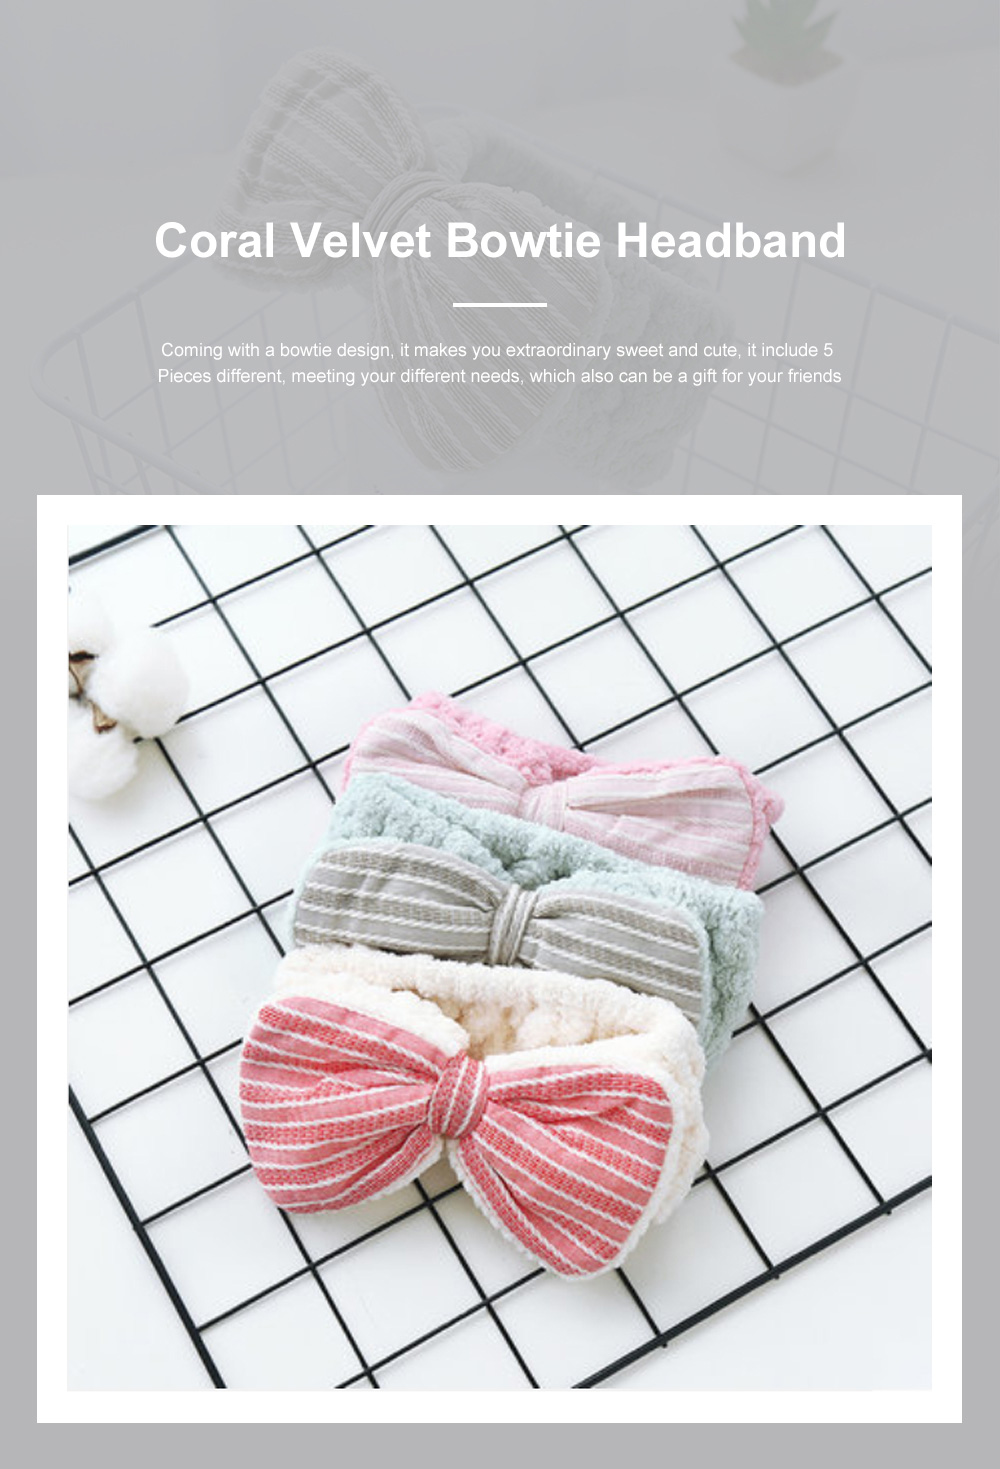 Coral Velvet Bowtie Headband Makeup Hairband with Elastic Tie for Spa Yoga Sports Shower 0